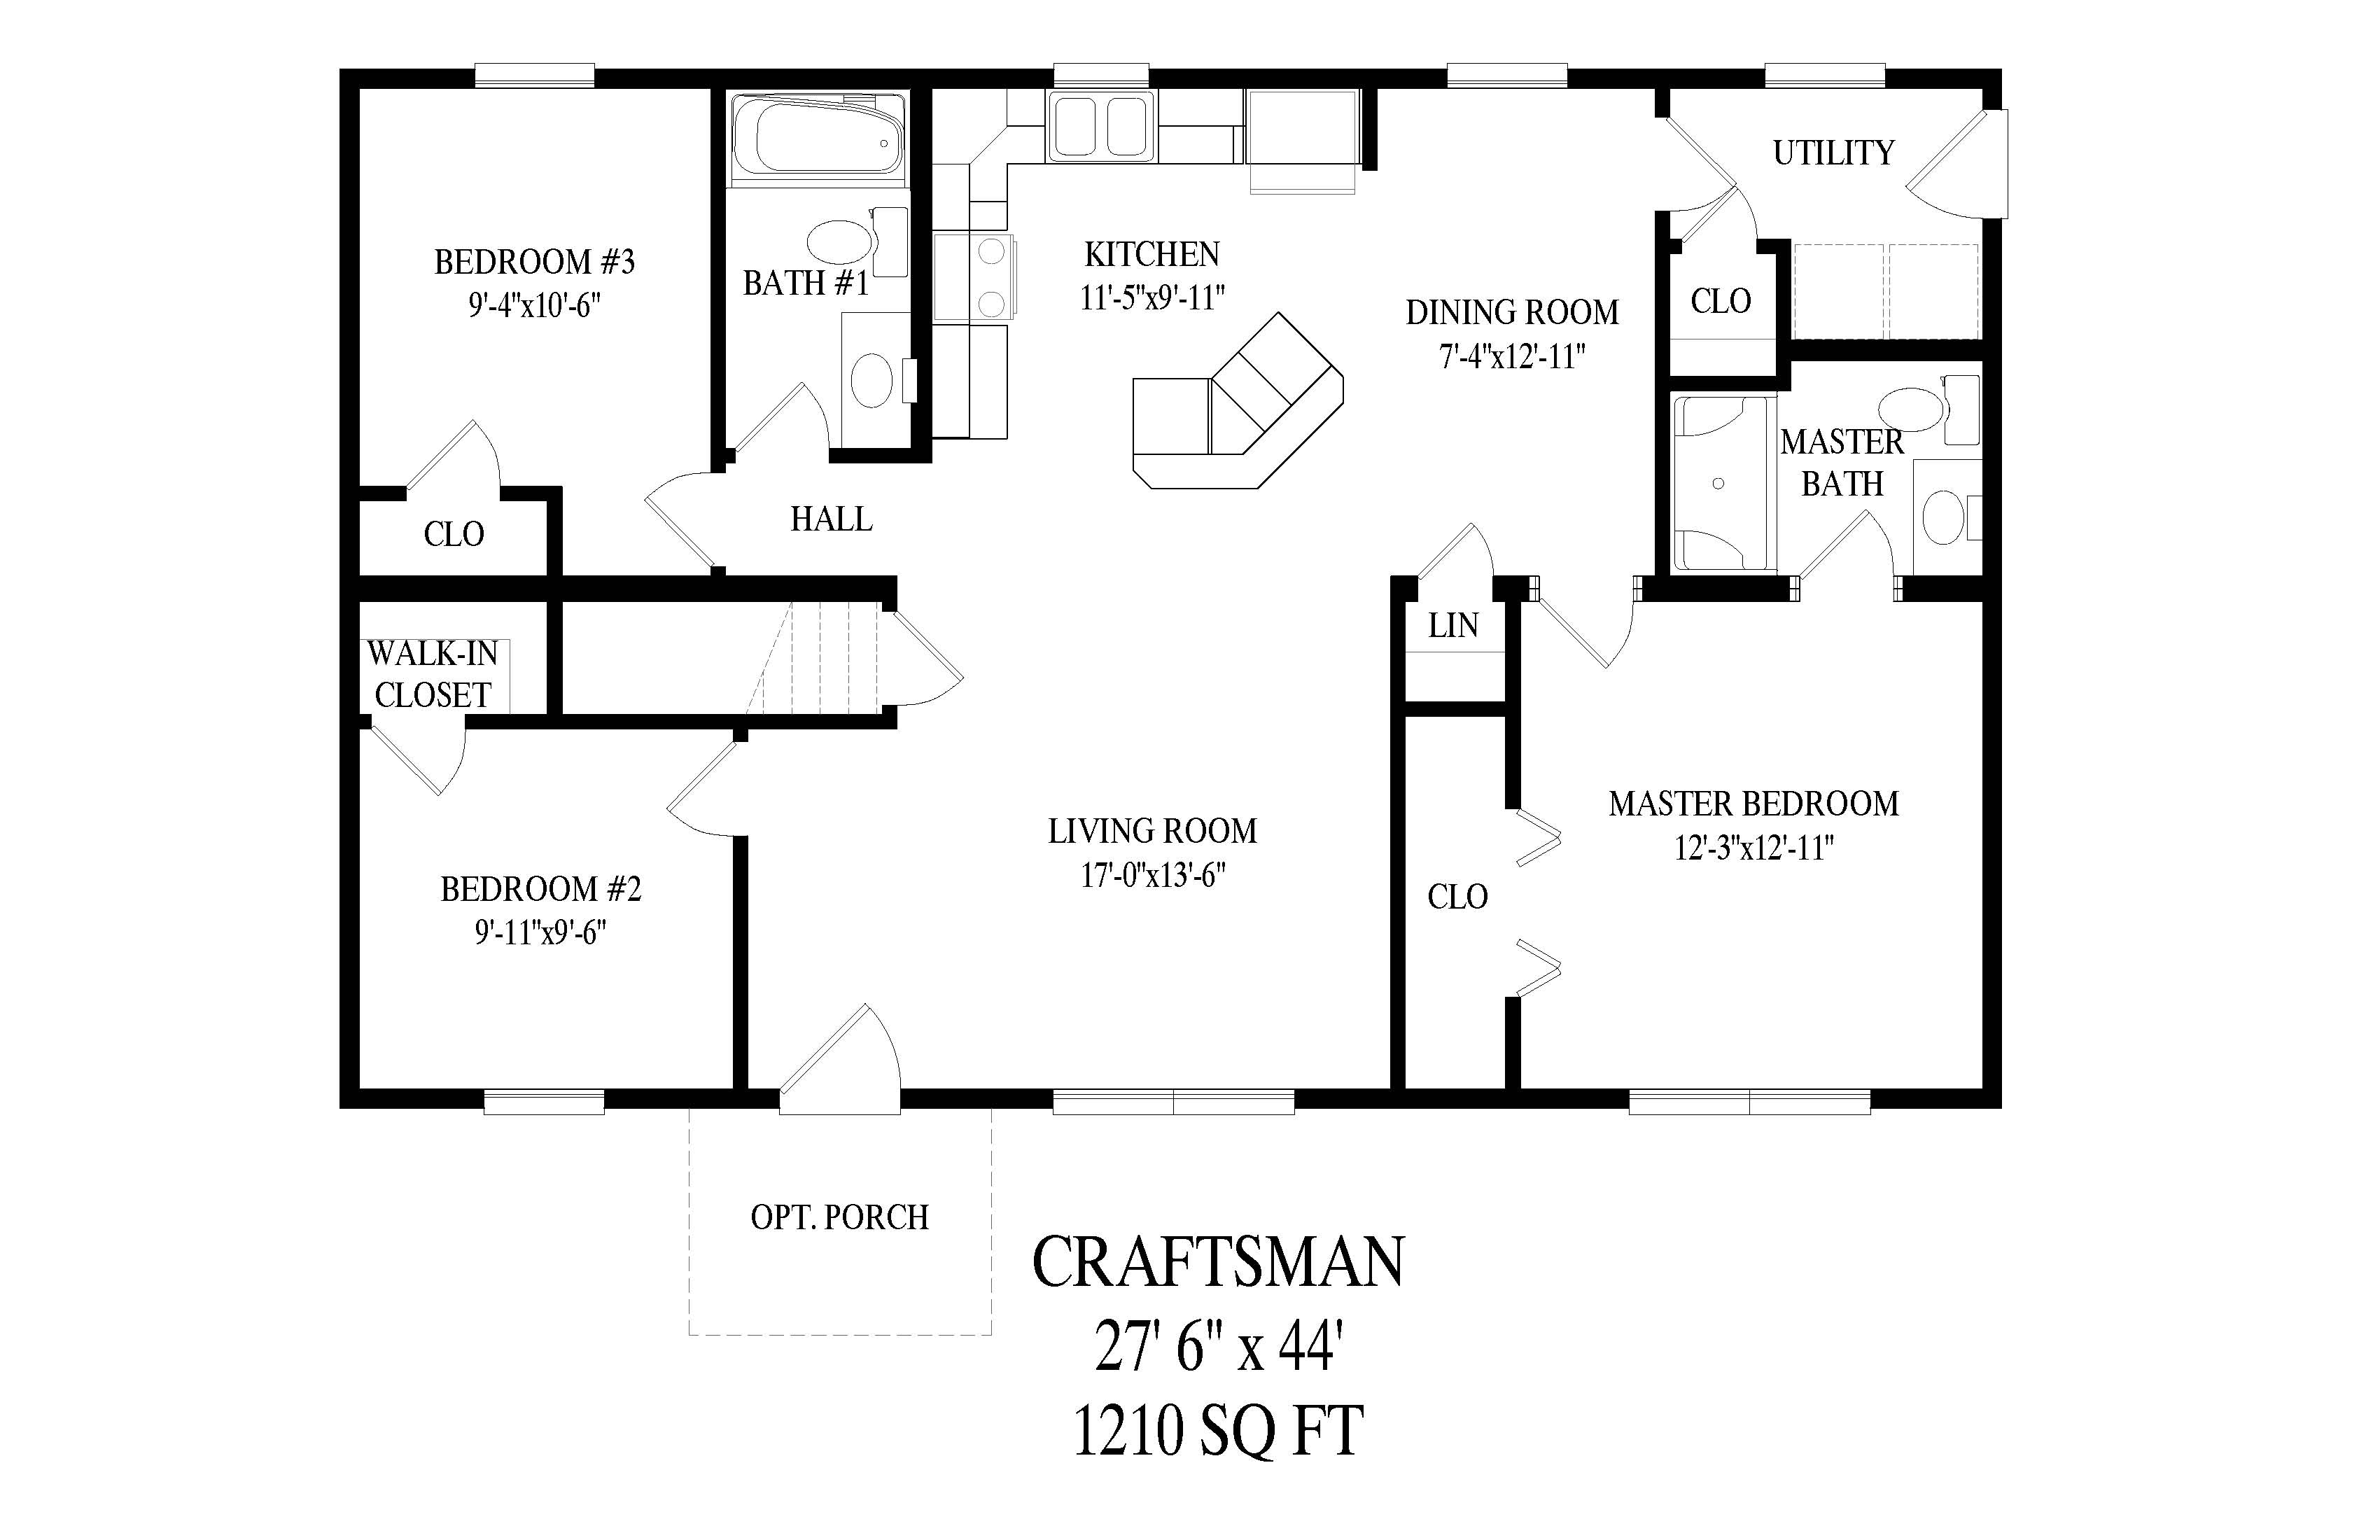 this http://custombuildingsystems.net/wp-content/uploads/2018/06/CRAFTSMAN-Model.jpg